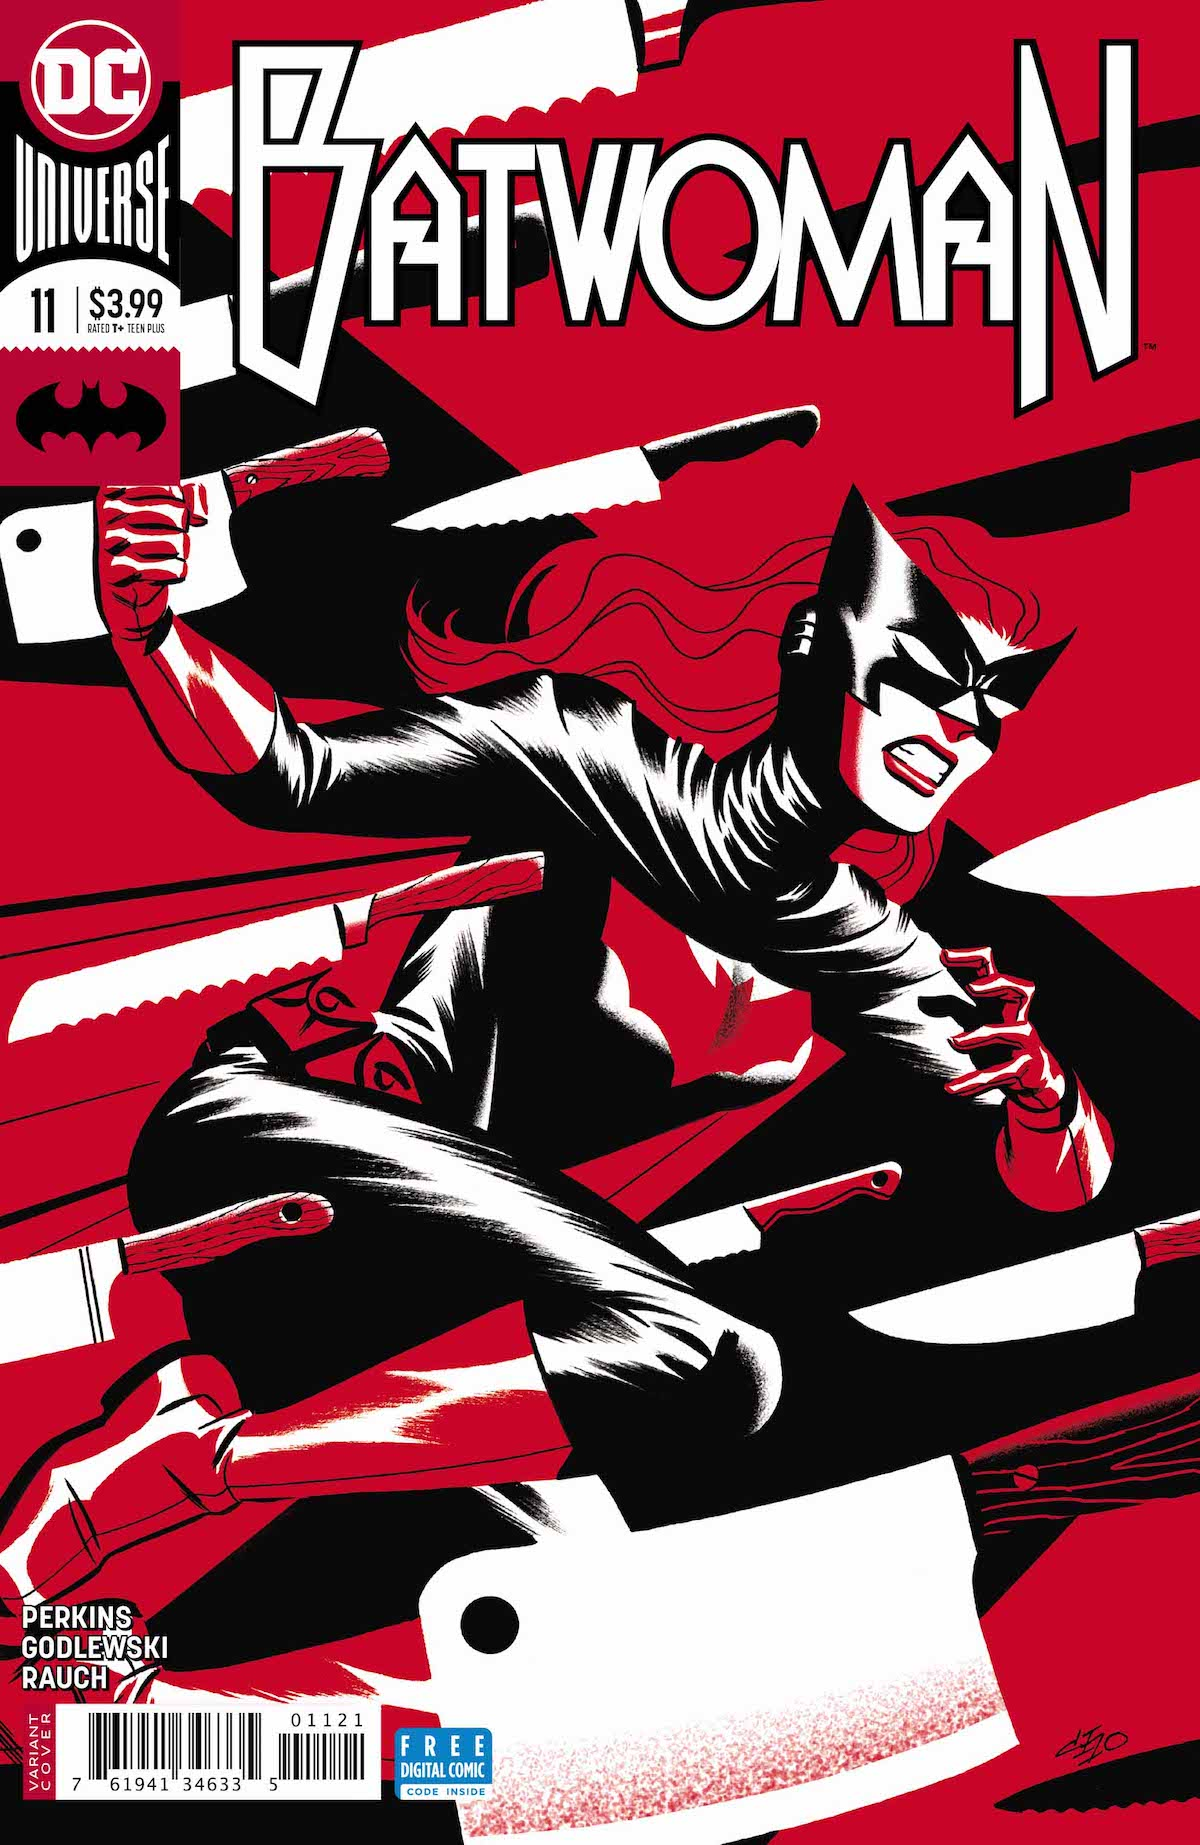 Batwoman #11 variant cover